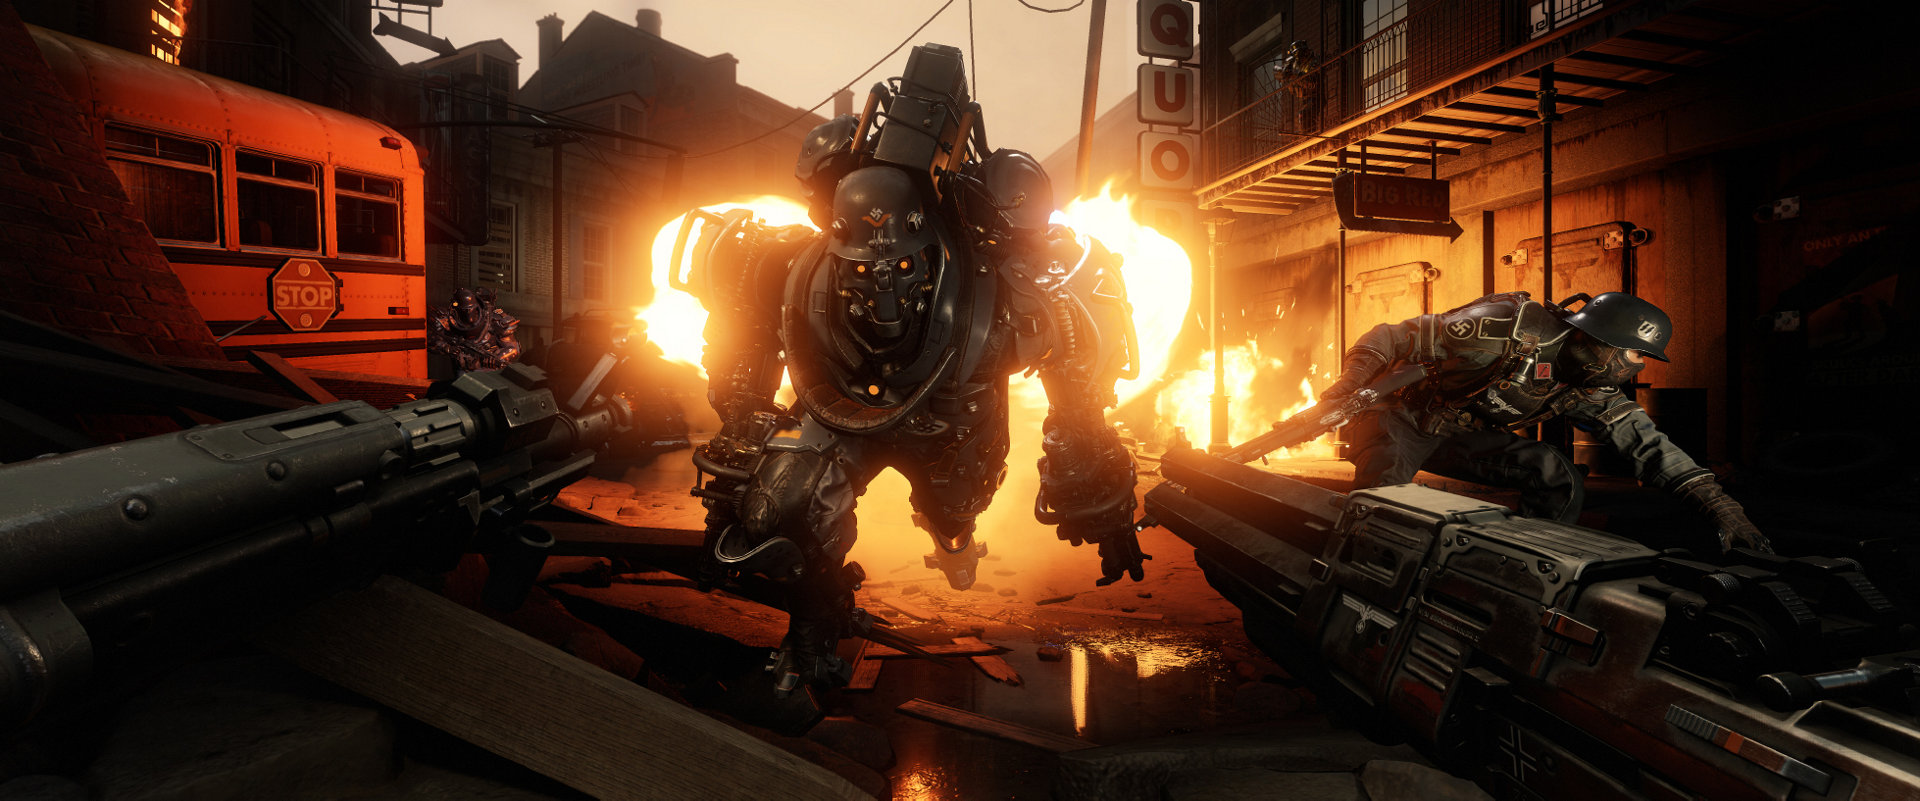 wolfenstein-ii-the-new-colossus-screen-0